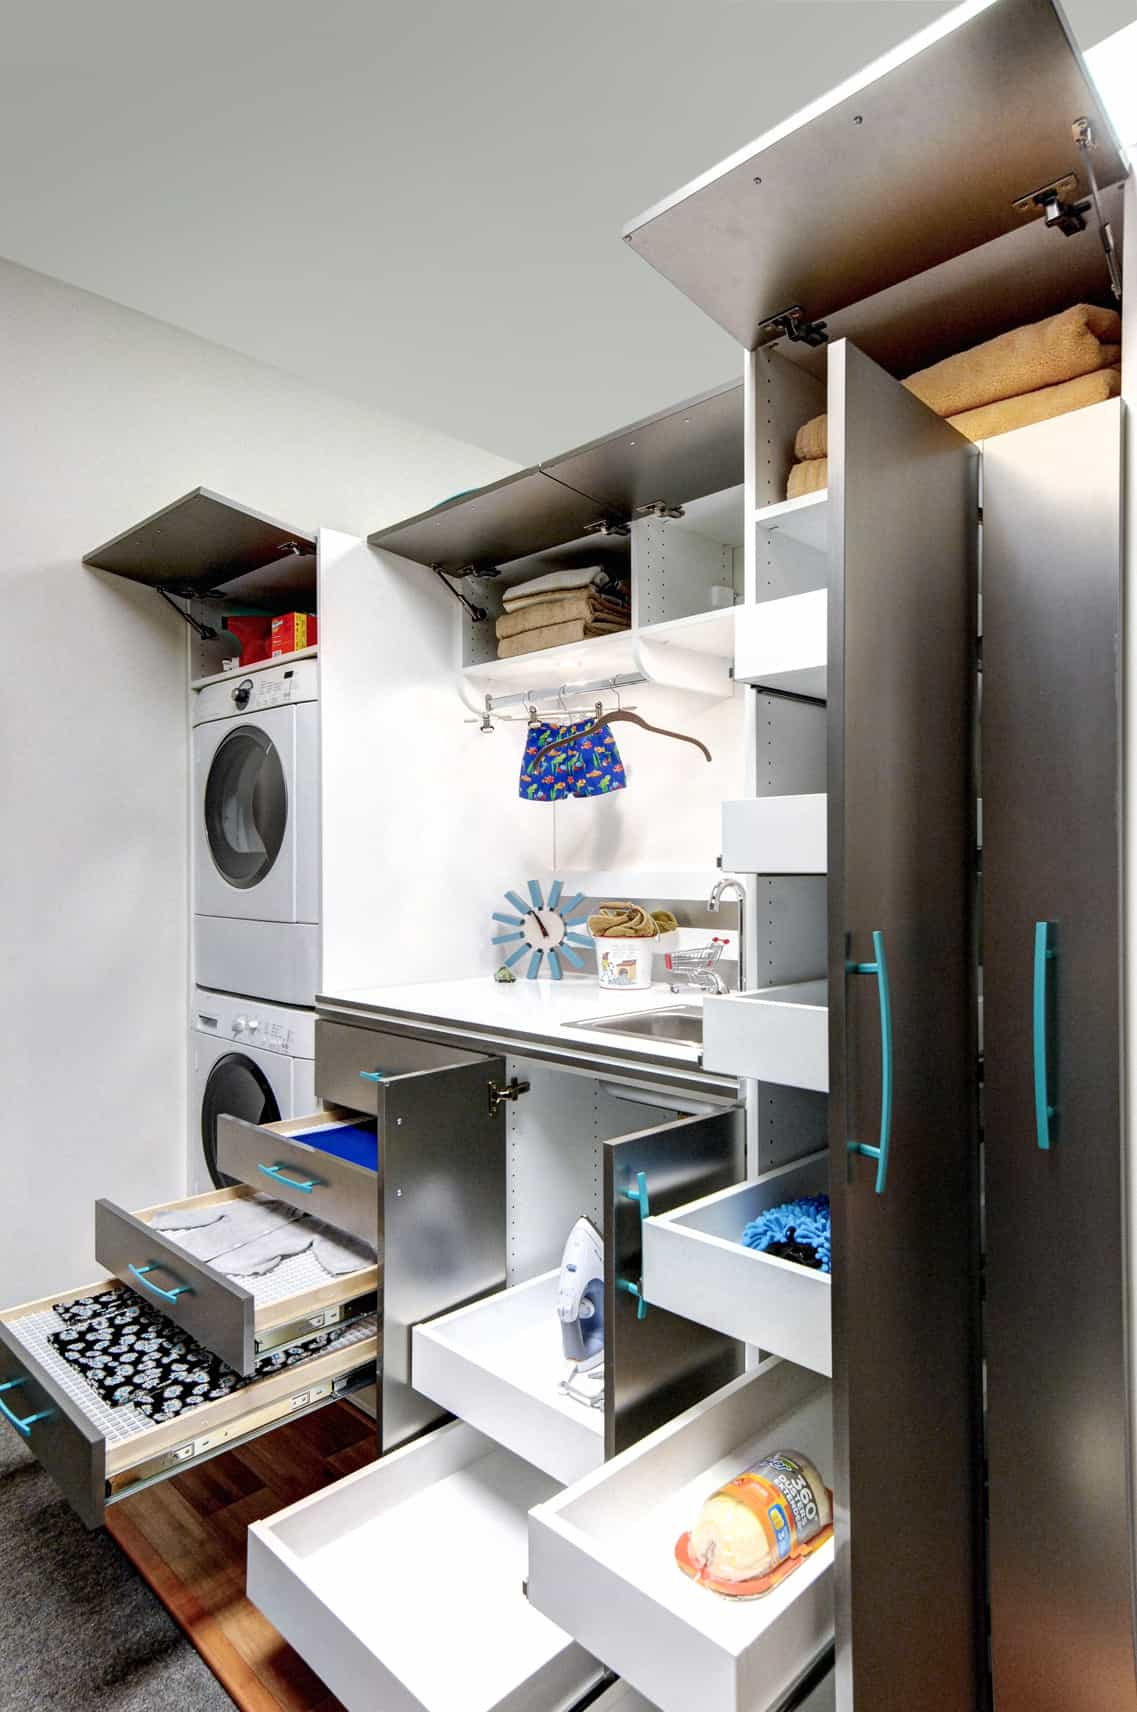 If any room can use clever storage, it's the laundry room. Here's a great custom laundry room cabinet system built nexed to stackable washer and dryer.